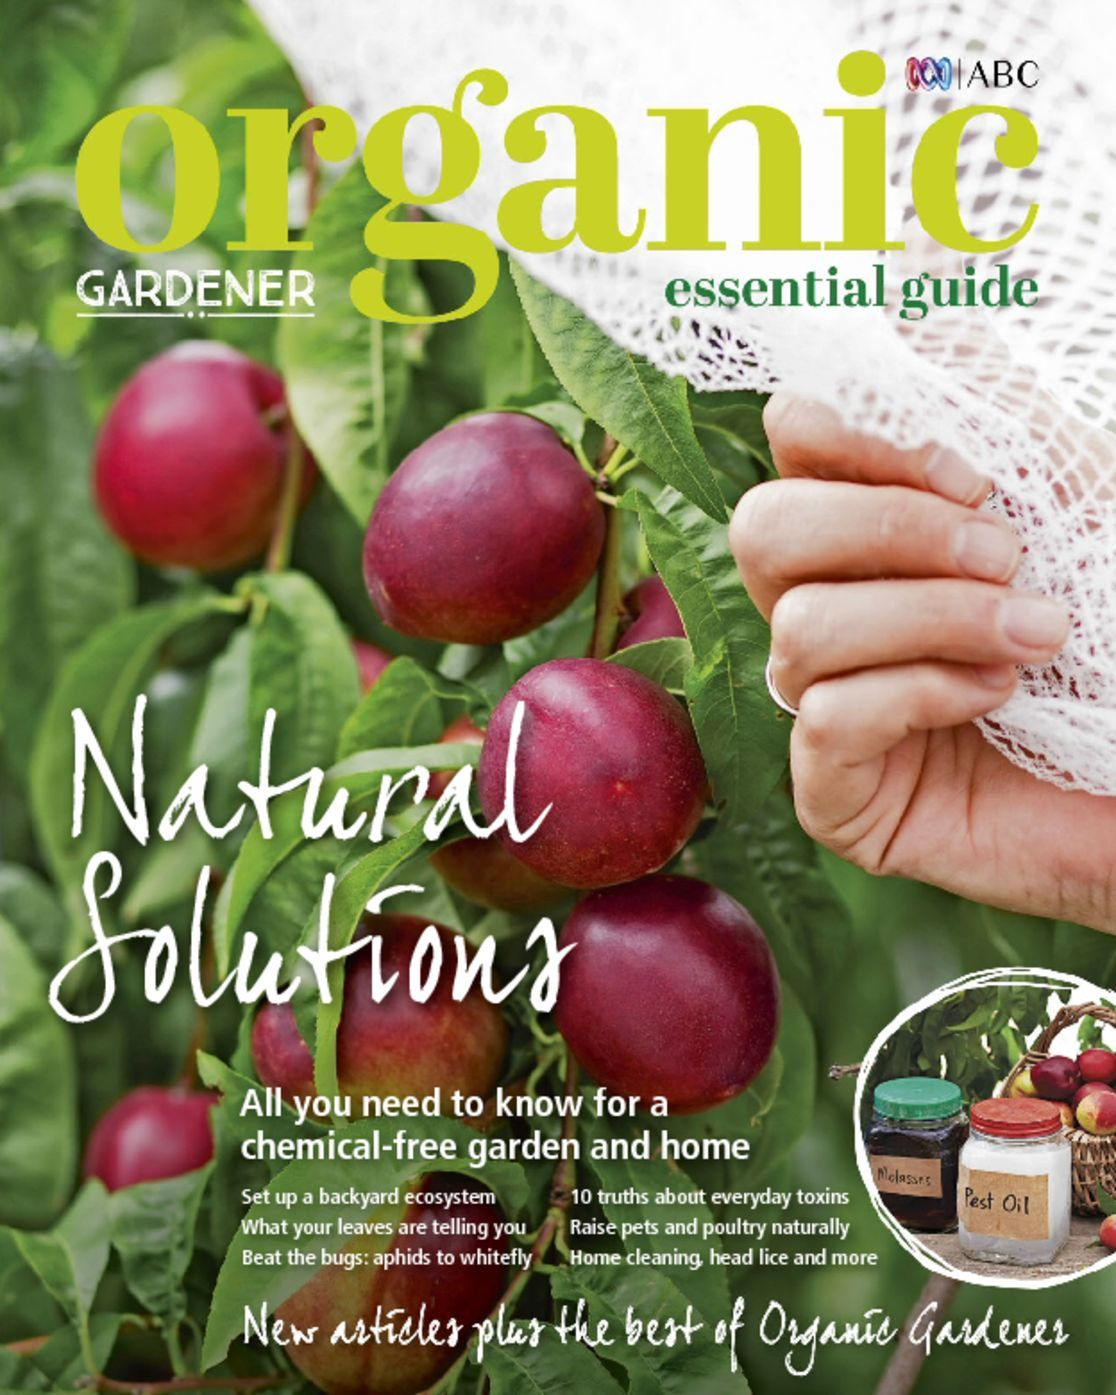 ABC Organic Gardener Essential Guides Digital